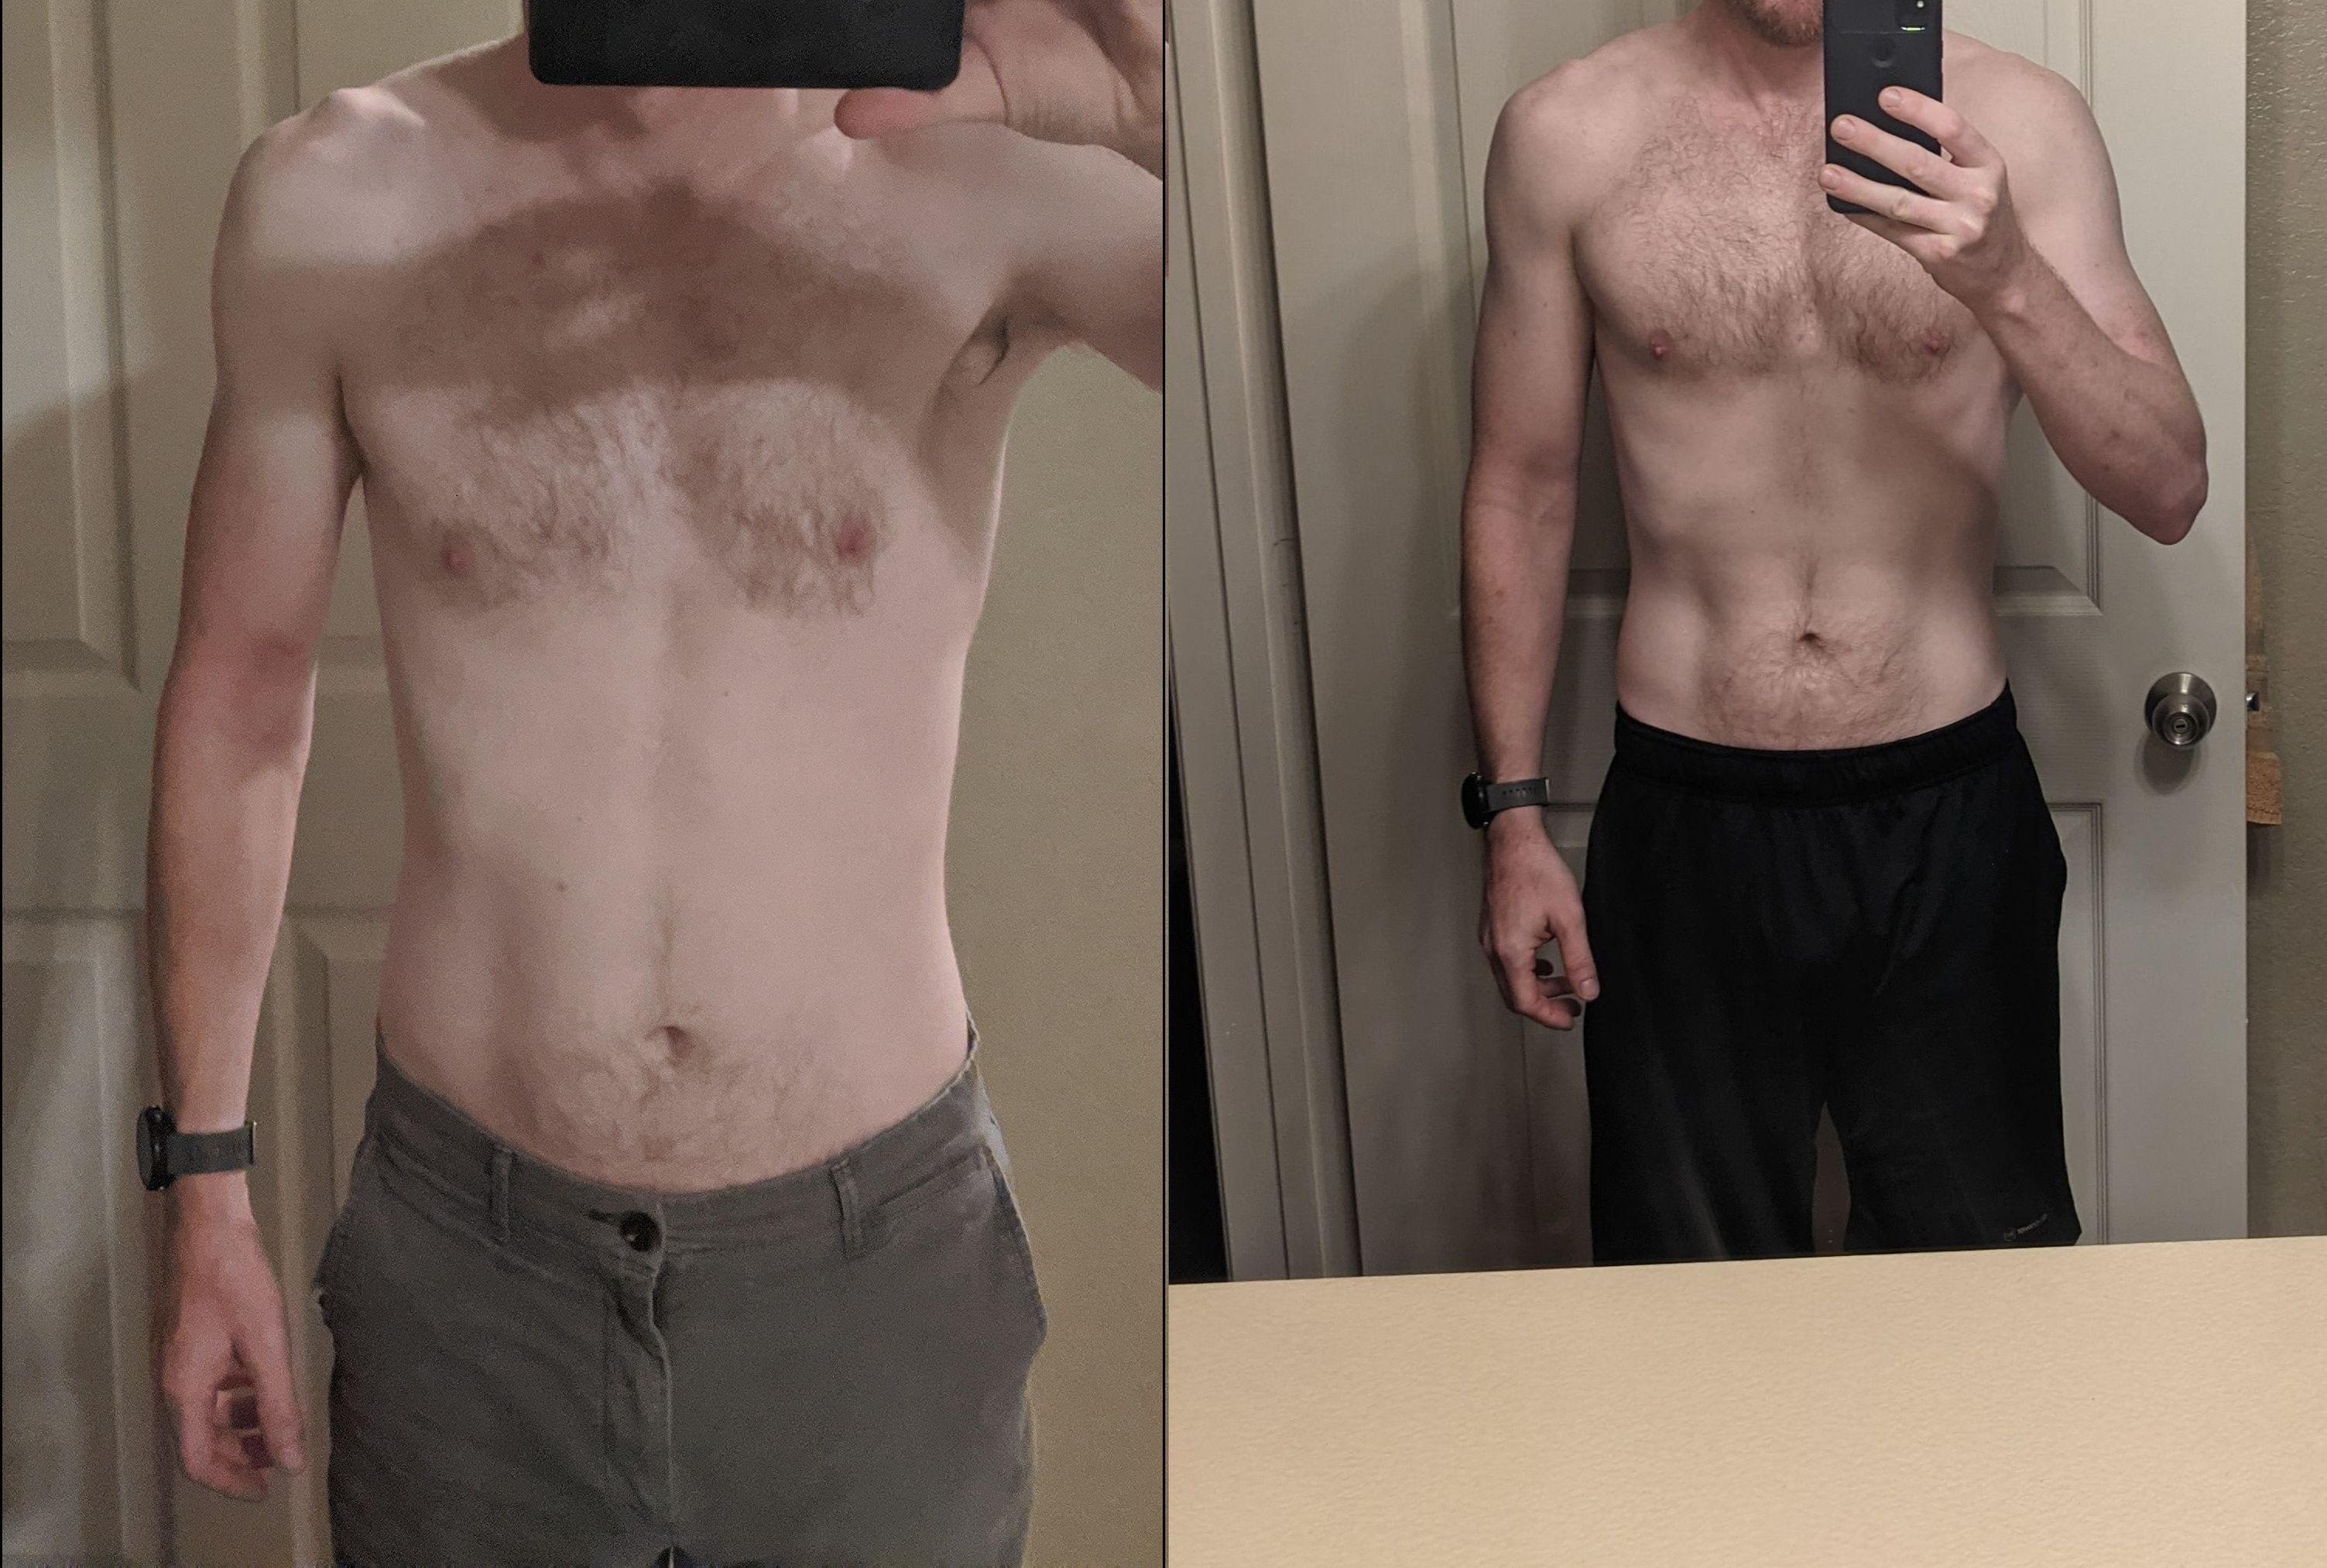 5 feet 11 Male 7 lbs Weight Gain Before and After 155 lbs to 162 lbs